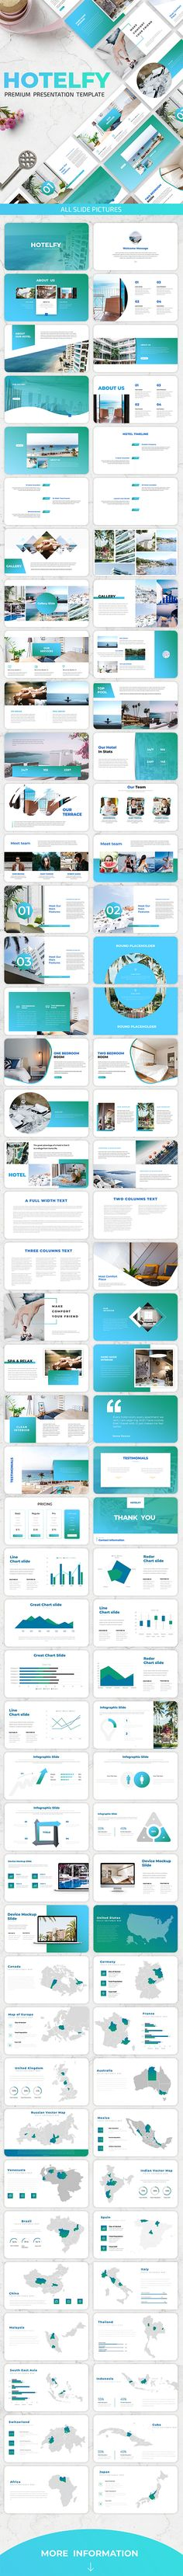 84 Best Free Presentation Templates Images On Pinterest In 2018